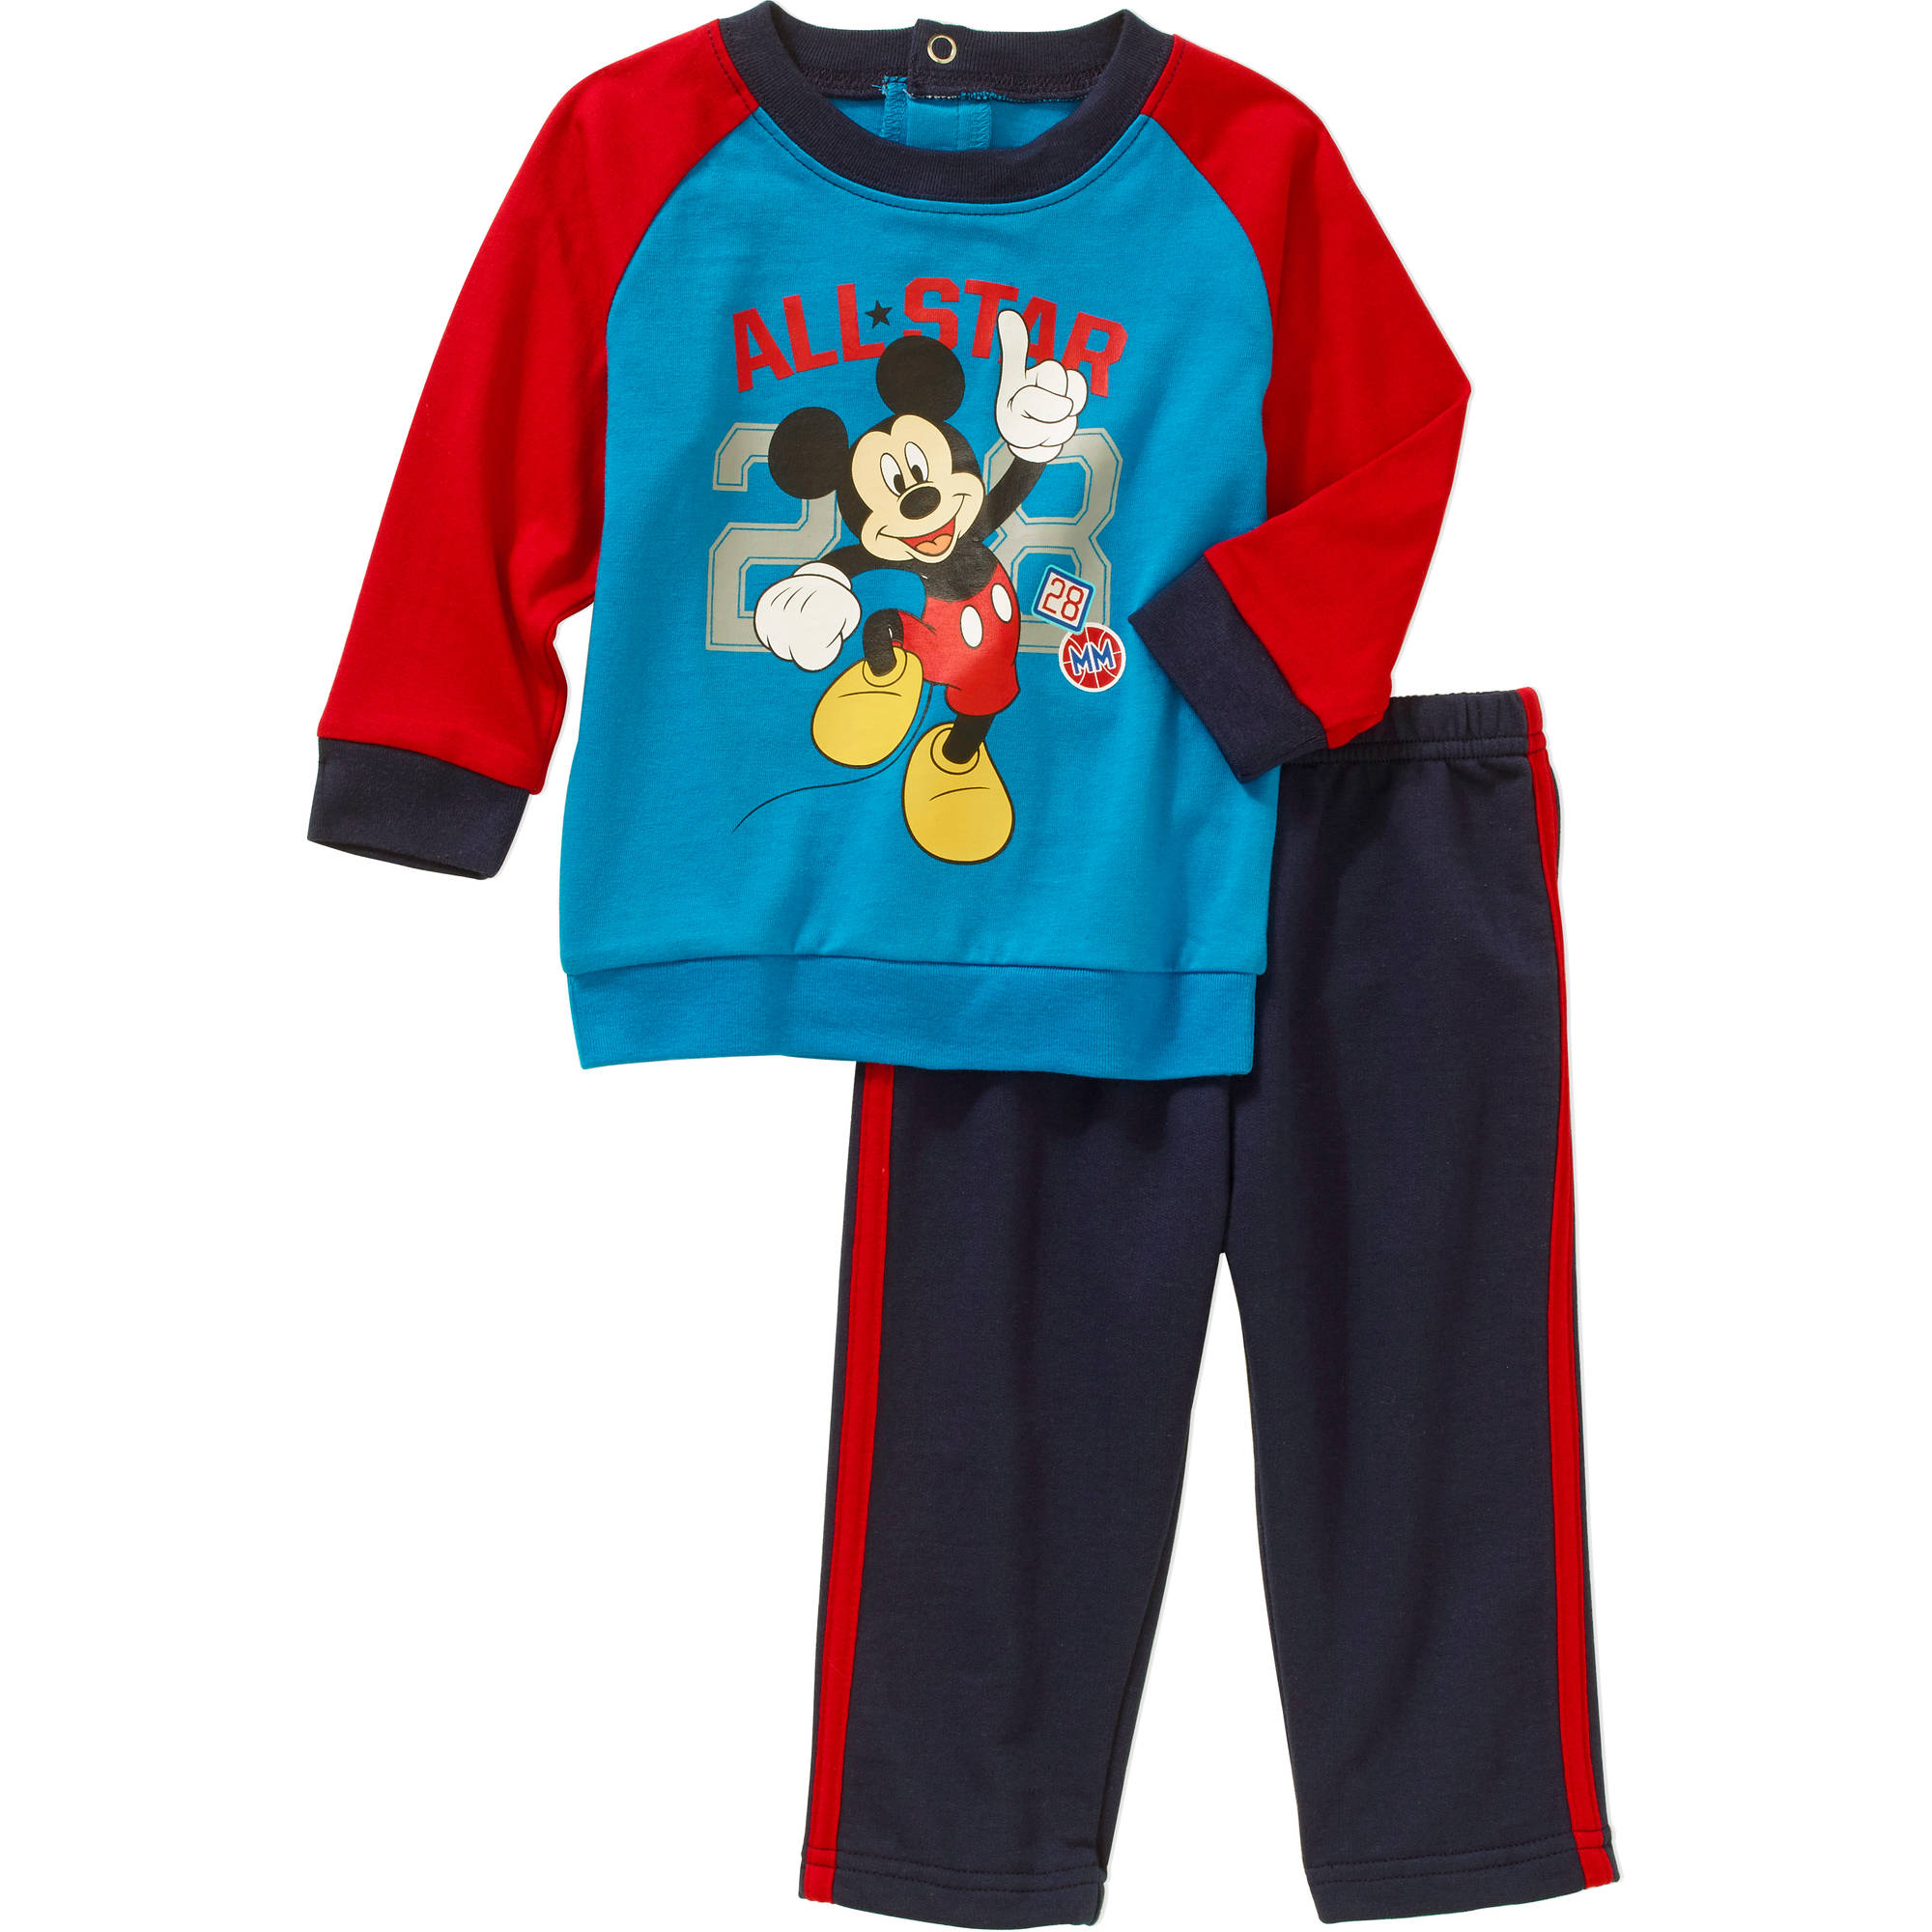 Mickey Mouse Newborn Baby Boys' French Terry Top and Jersey Pants Outfit Set